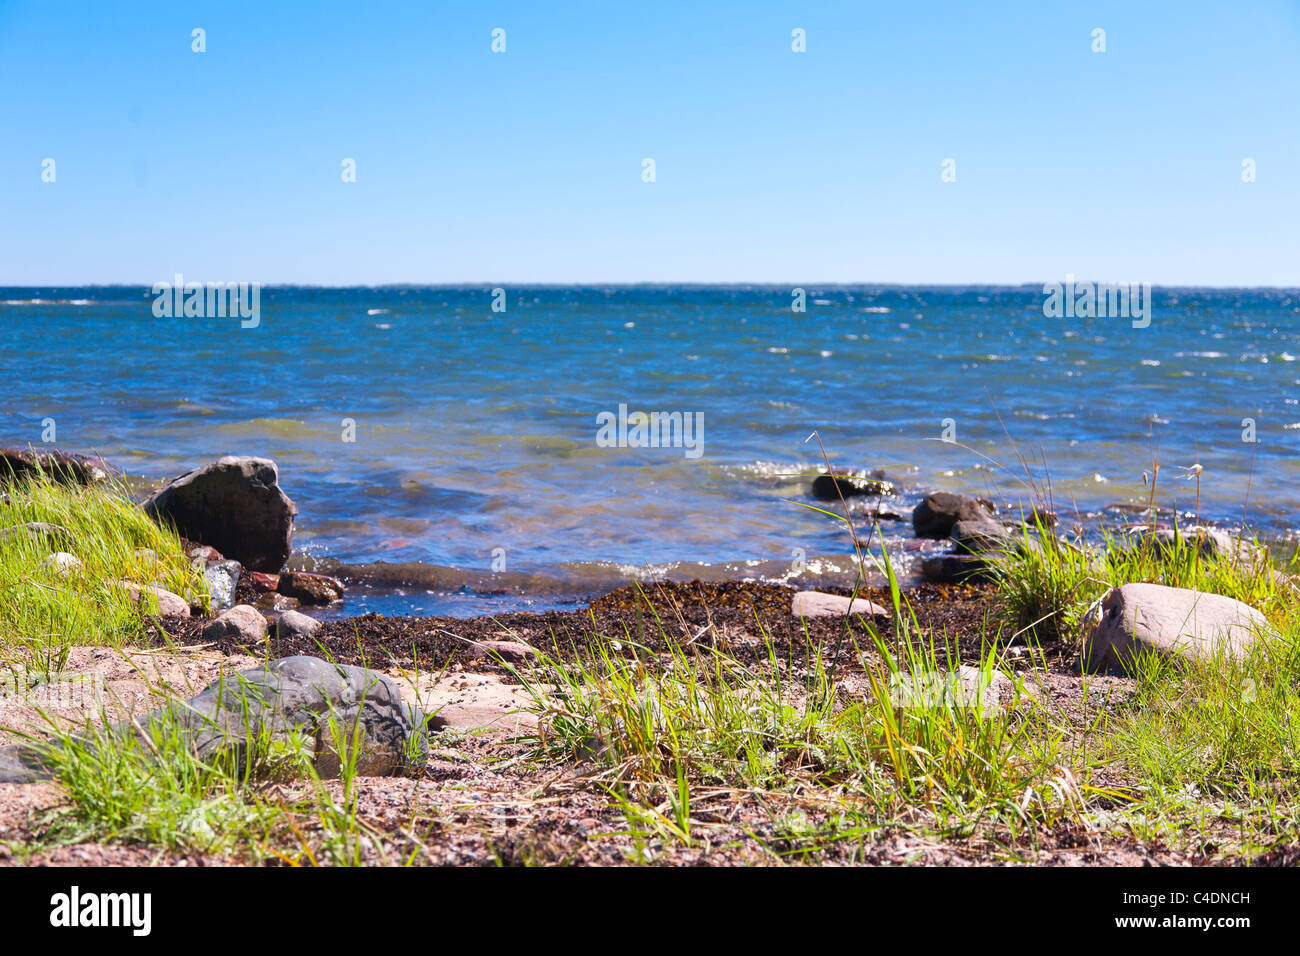 Beach on Blido in the 'Archipelago of Stockholm', Sweden. - Stock Image